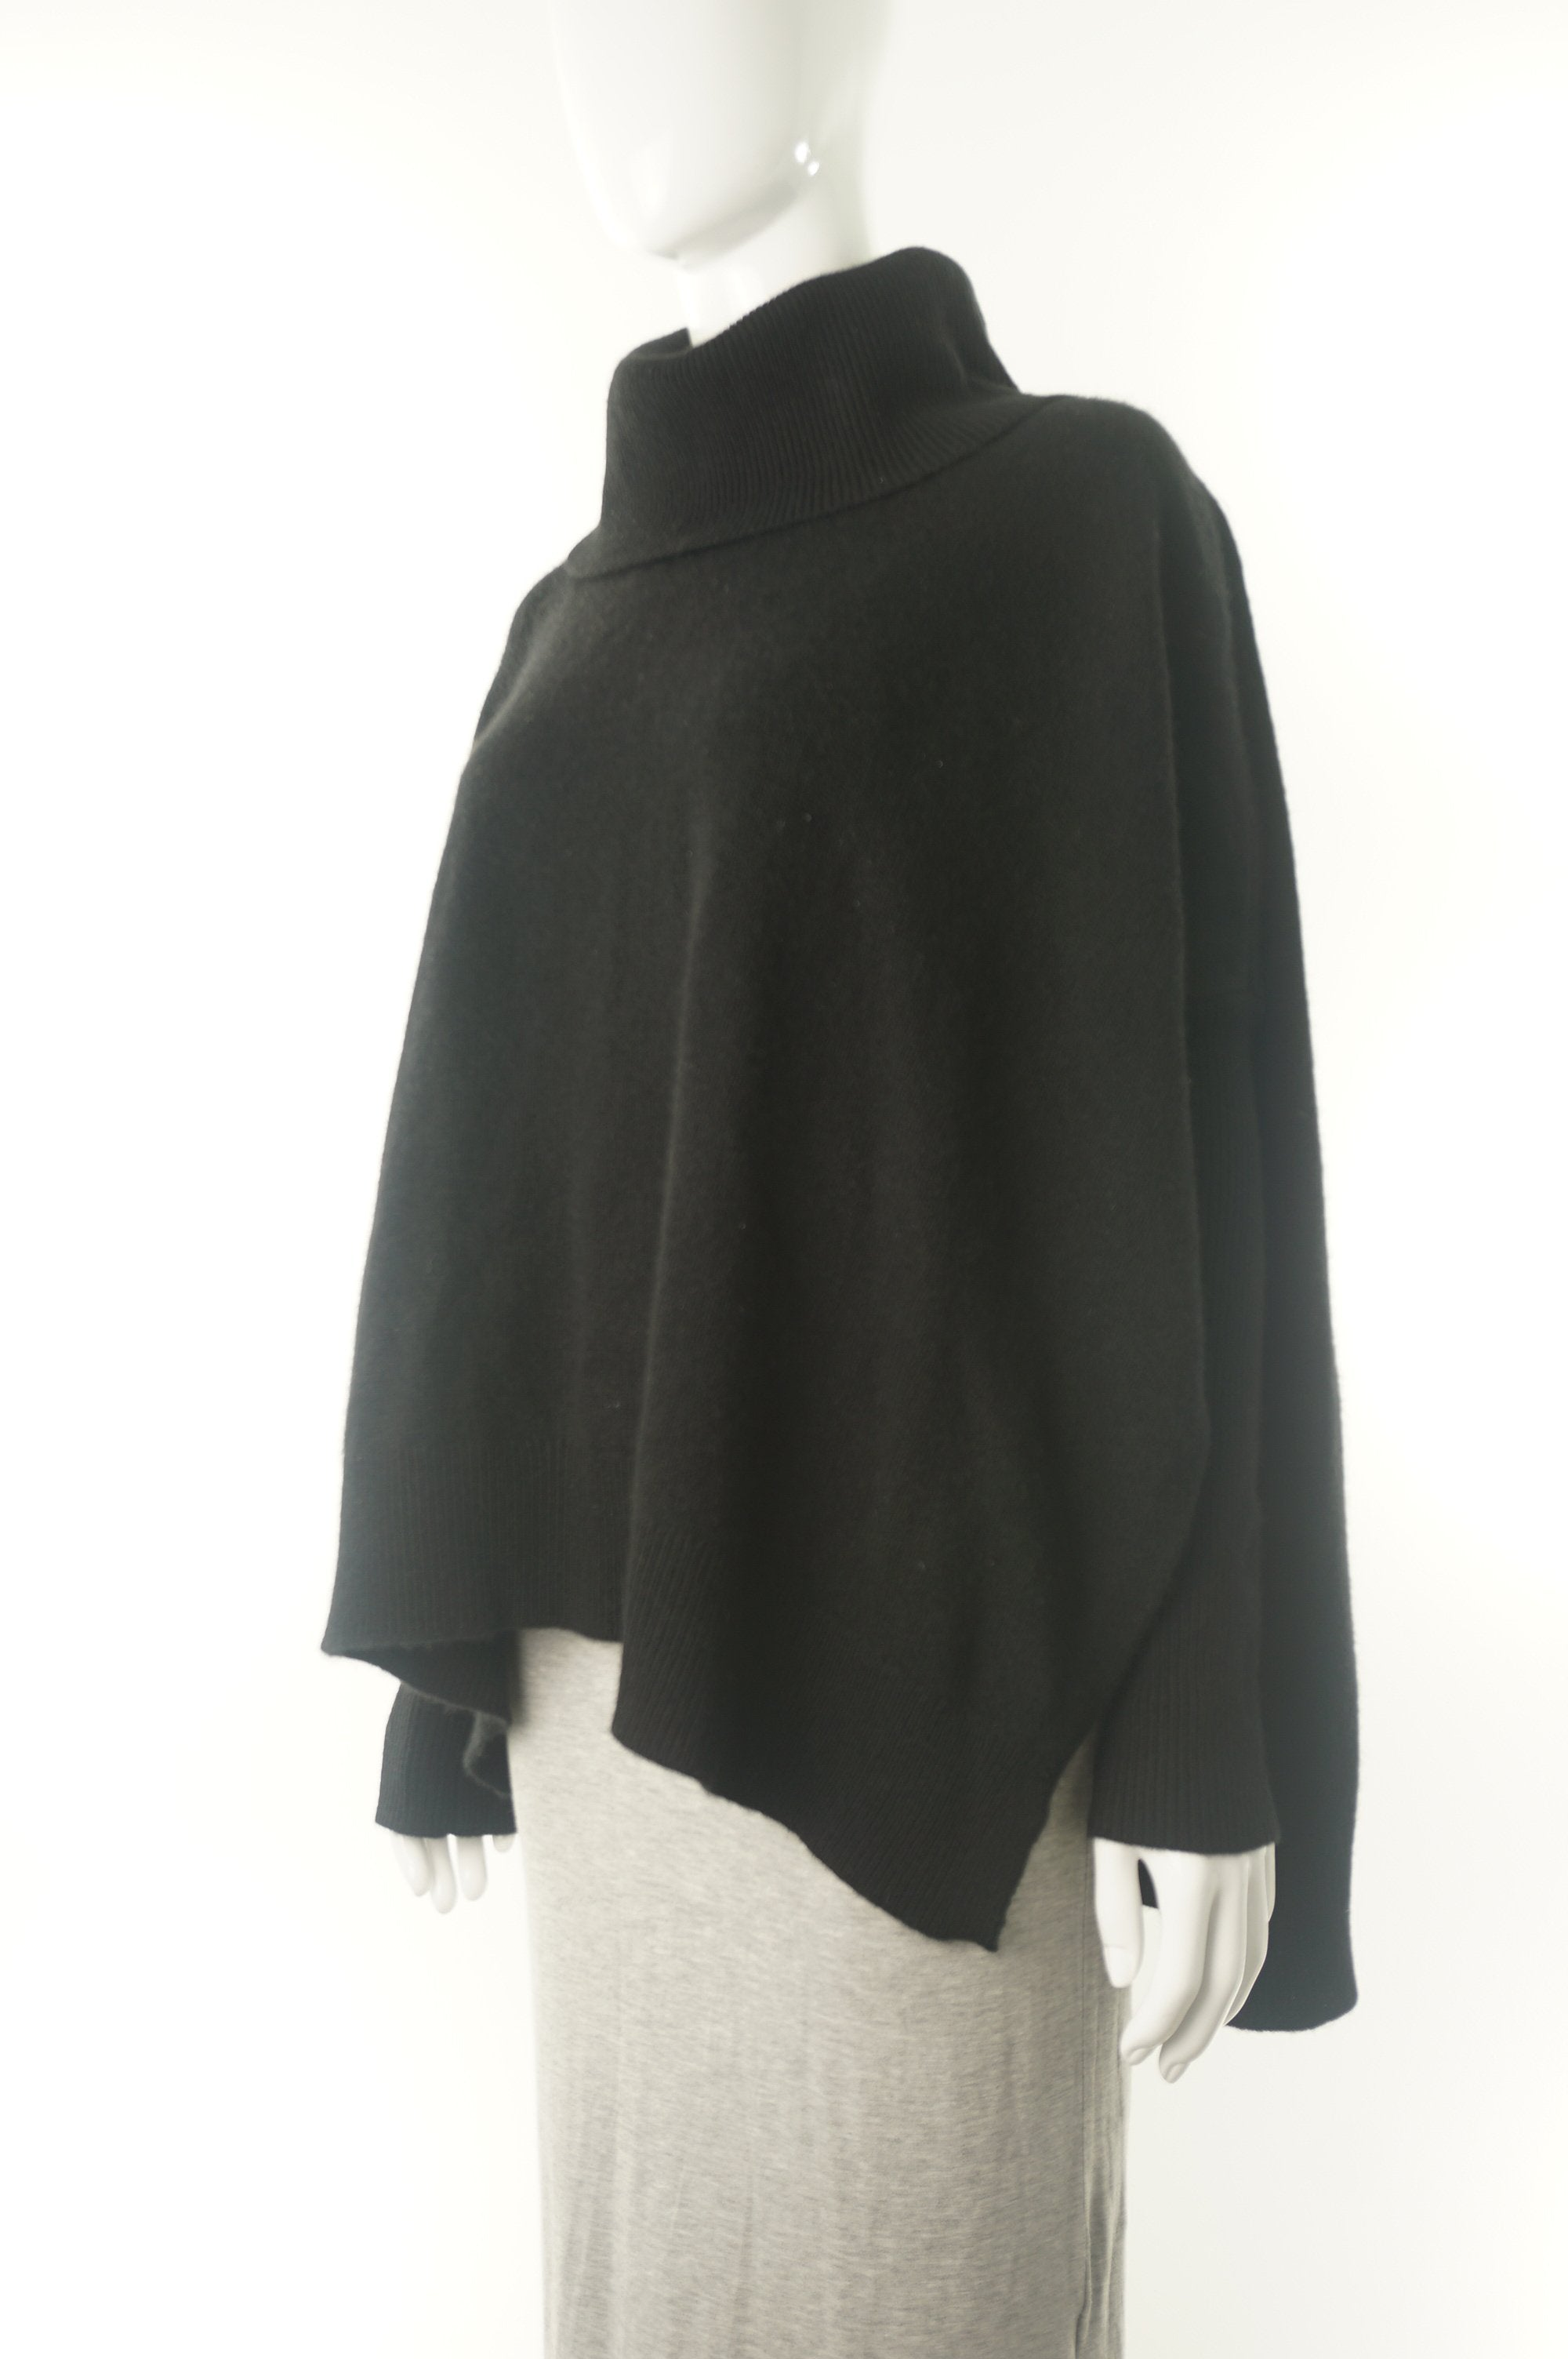 Lord & Taylor Cashmere Cape Poncho, Super soft pullover for a warm and elegant look., Black, 100% Cashmere,